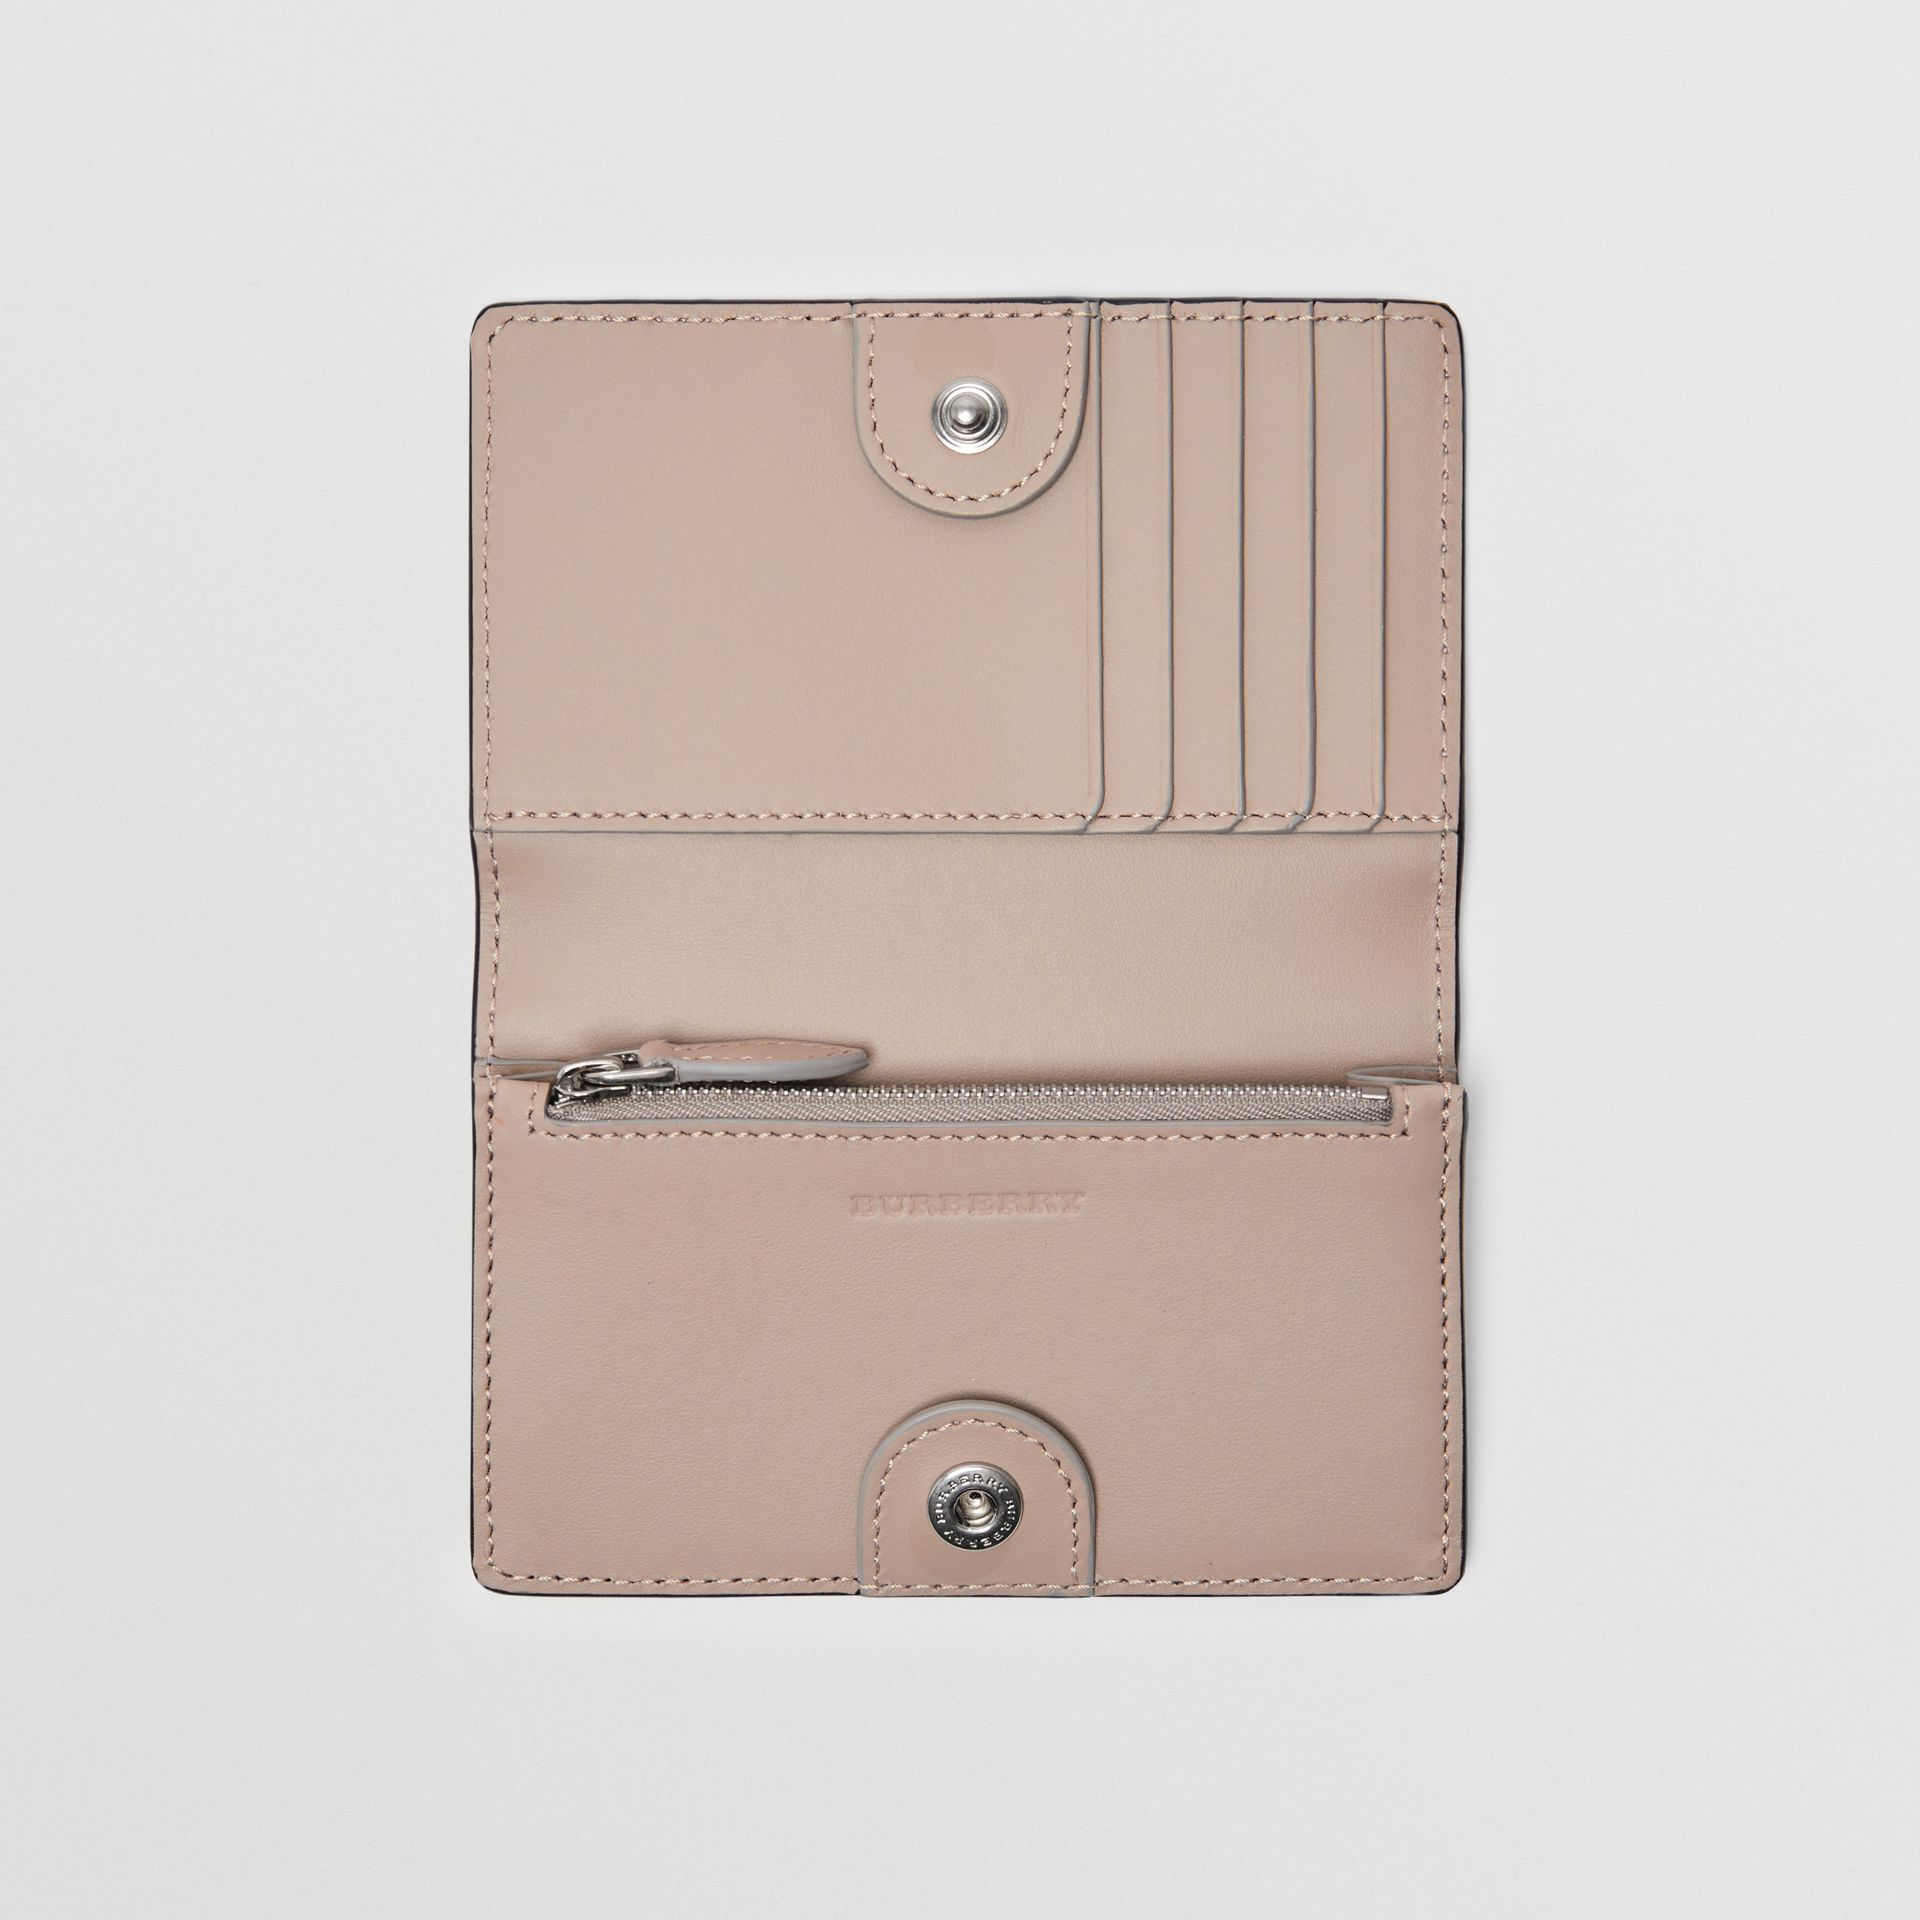 Small Embossed Crest Two-tone Leather Wallet in Chalk Pink - Women | Burberry - gallery image 2